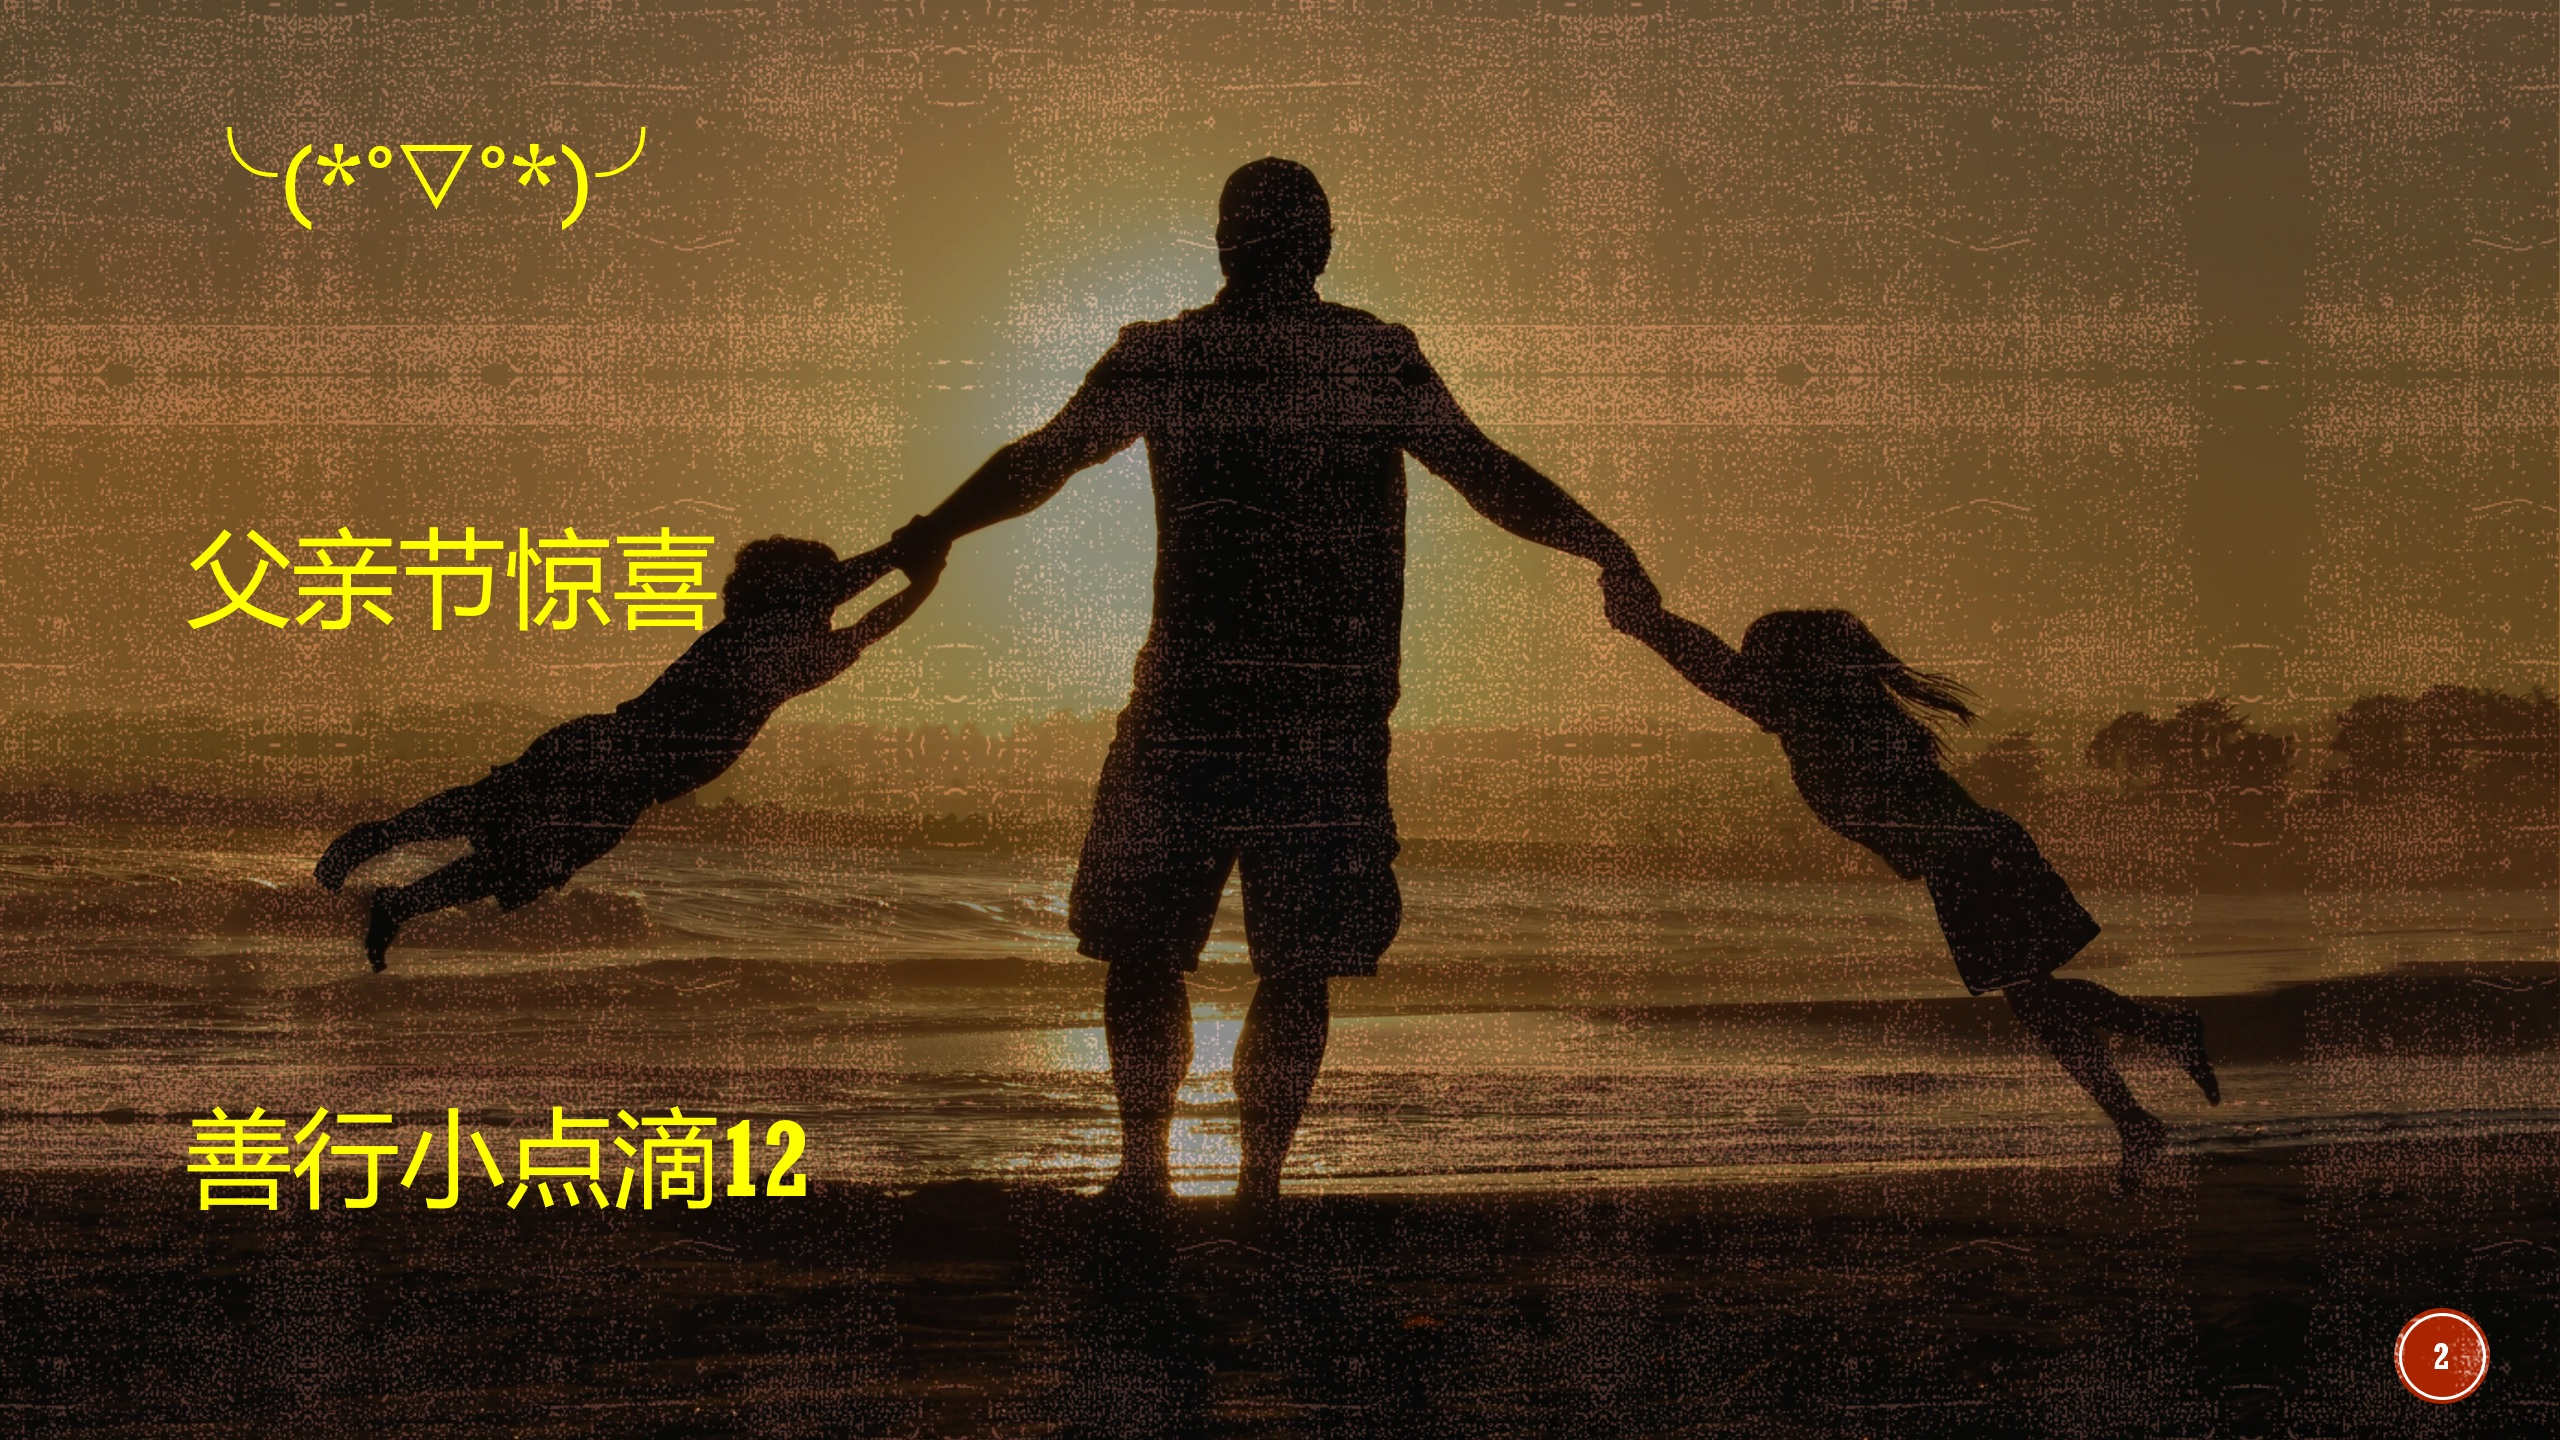 """VIRTUOUS ACT SHARING 12"" STAY HOME STAY SANE 31 善行小点滴分享 12 – 打包正能量 好好留在家  5.6.2020"